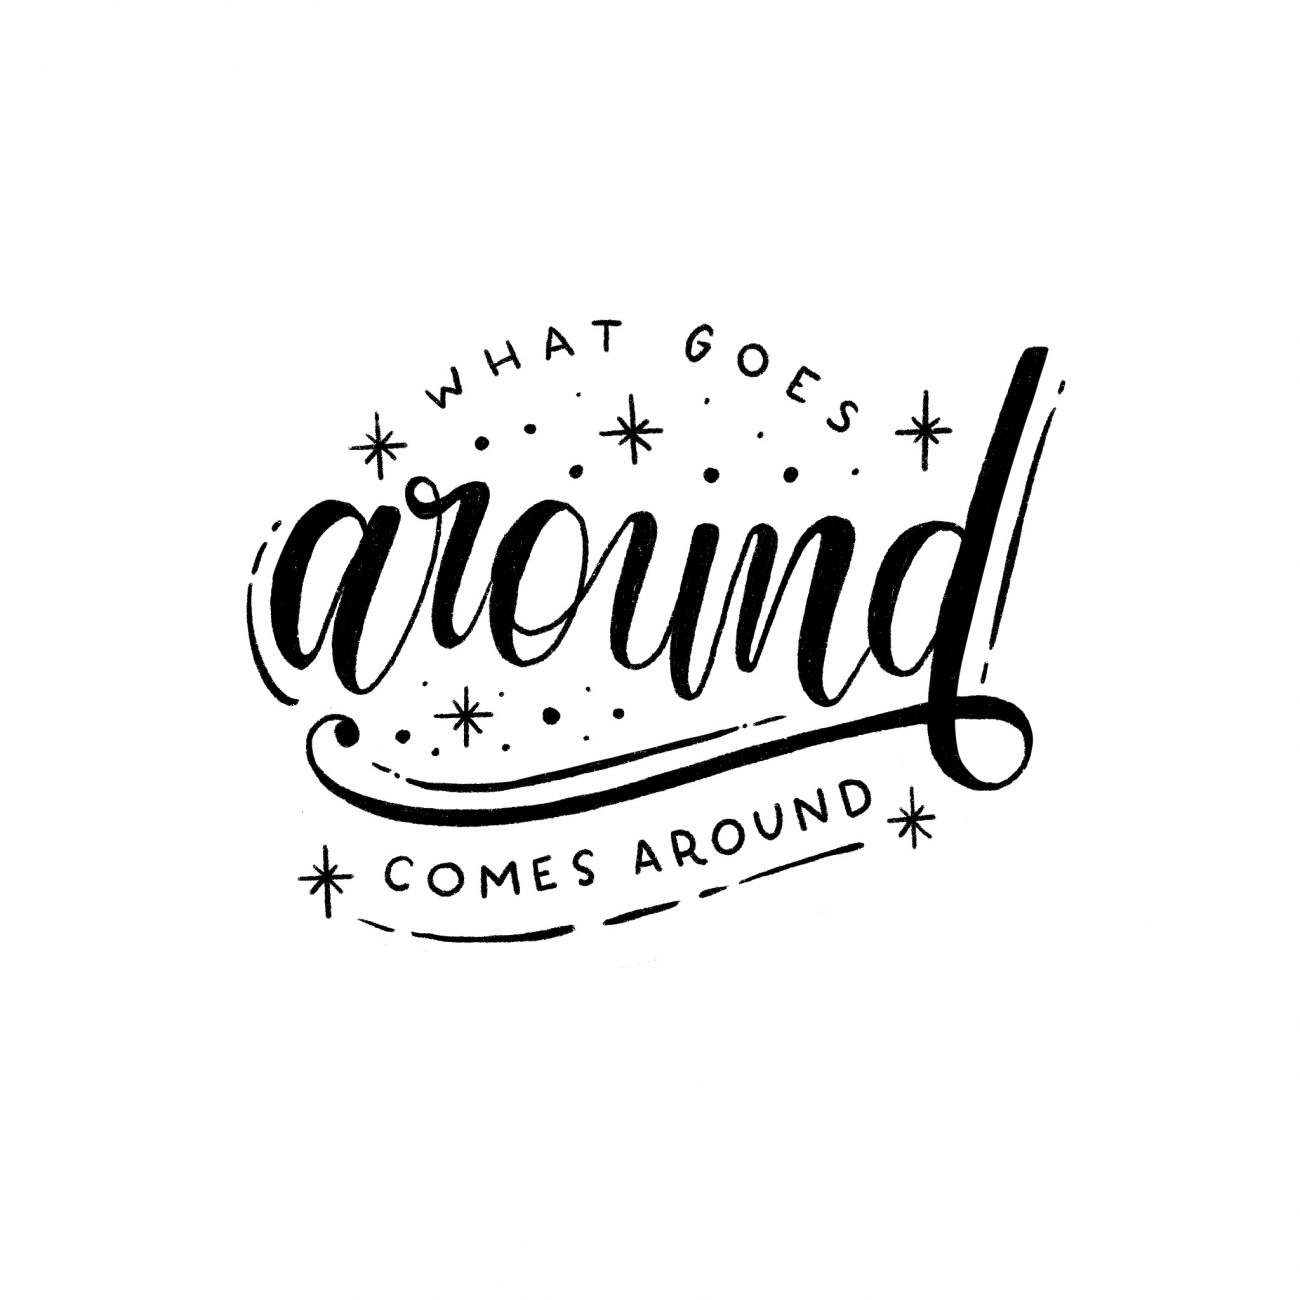 Lettering - What goes around